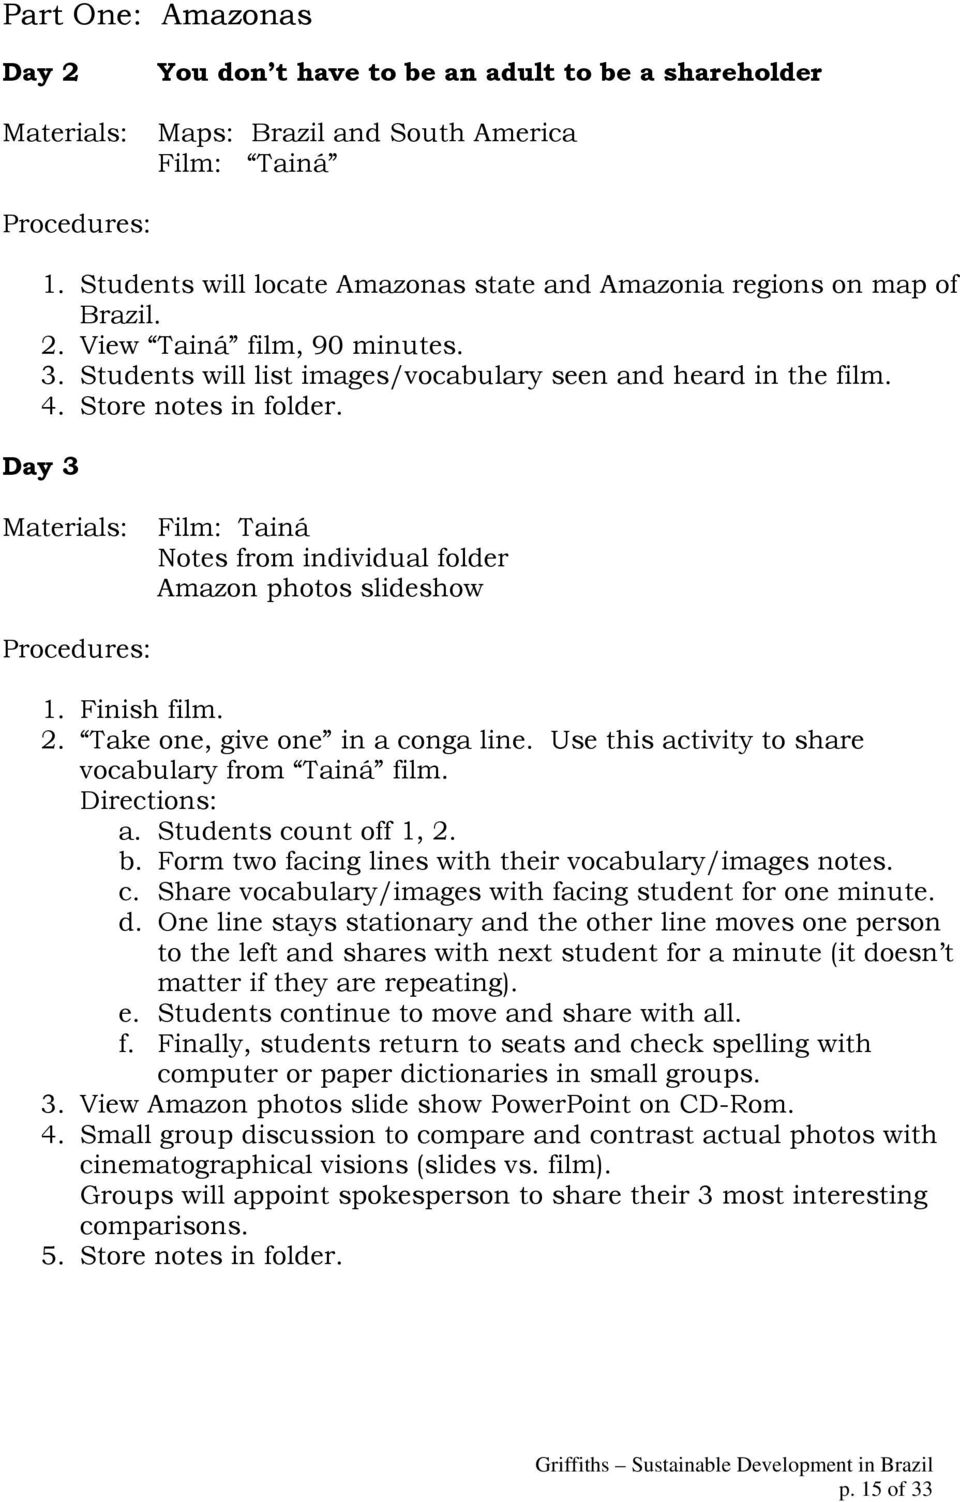 Day 3 Materials: Film: Tainá Notes from individual folder Amazon photos slideshow Procedures: 1. Finish film. 2. Take one, give one in a conga line.